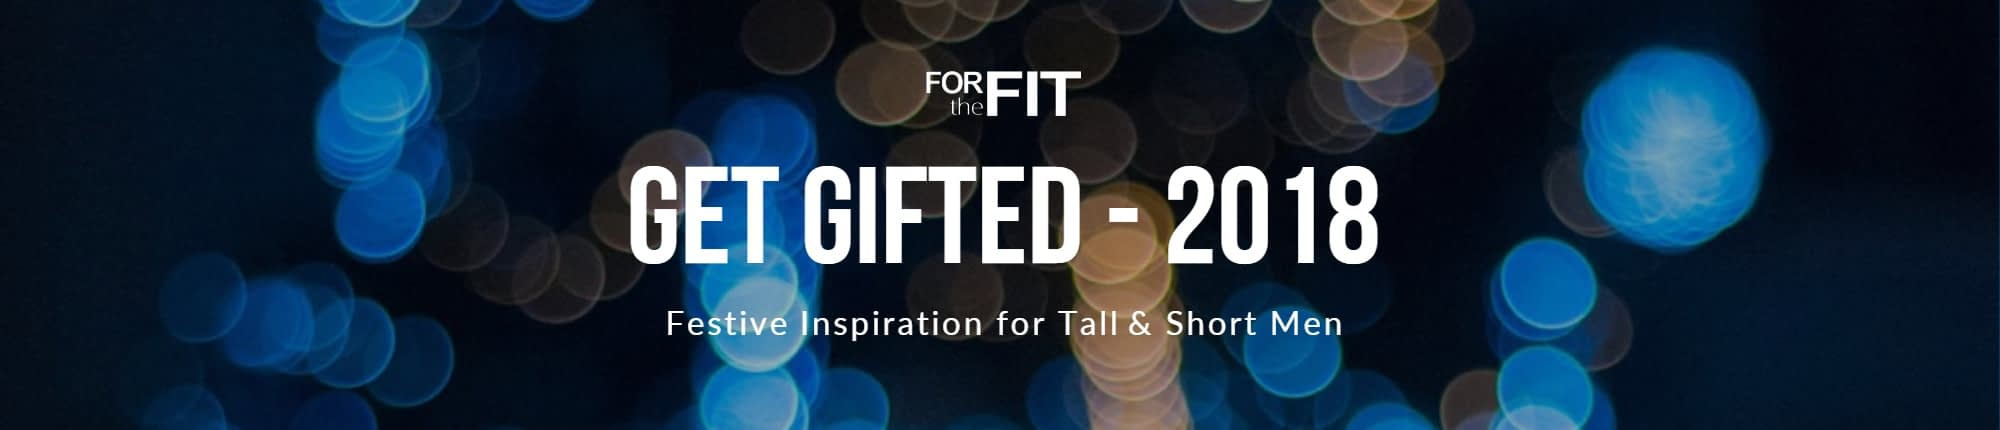 Get Gifted 2018